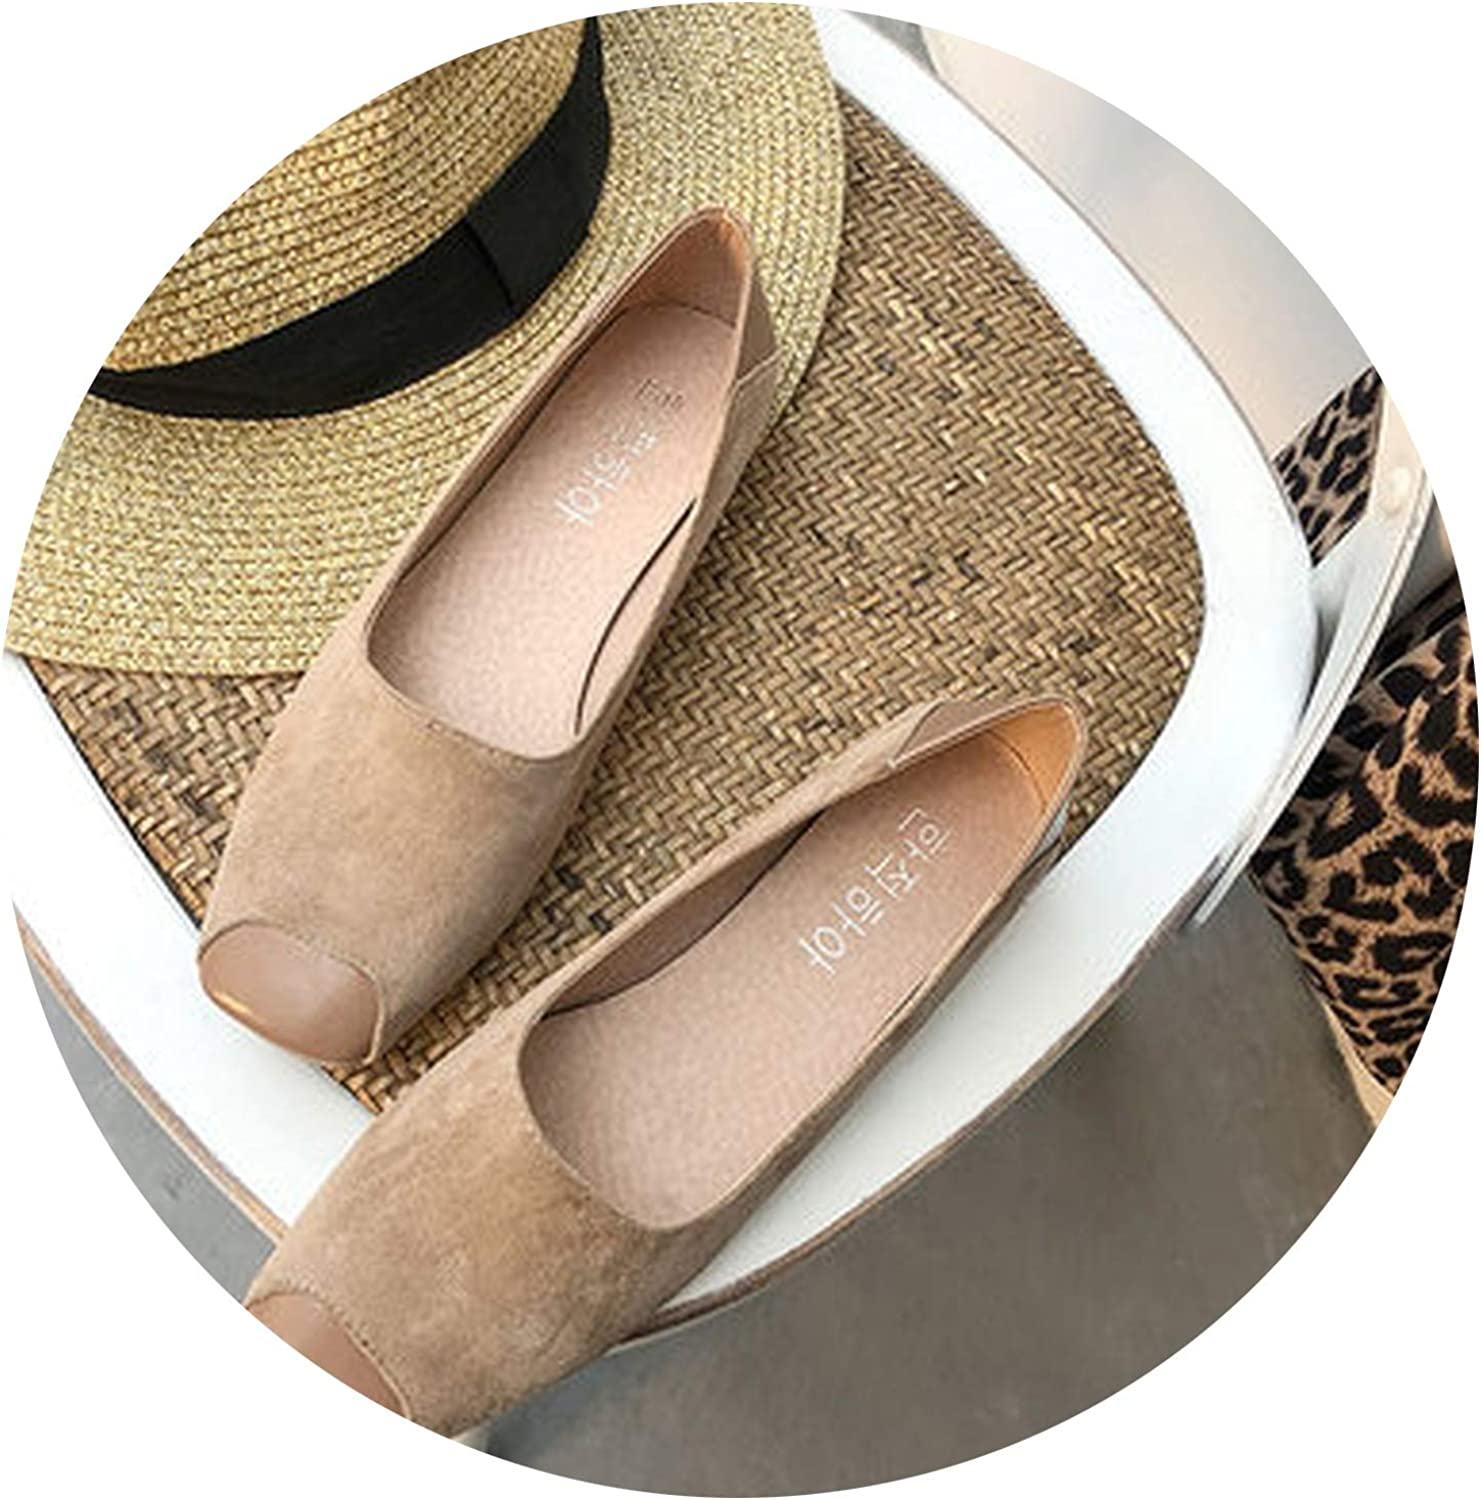 2019 Spring Summer Flats Fashion Square Toe Slip On Casual Boat shoes Women Weekends Comfort Flat Heel shoes